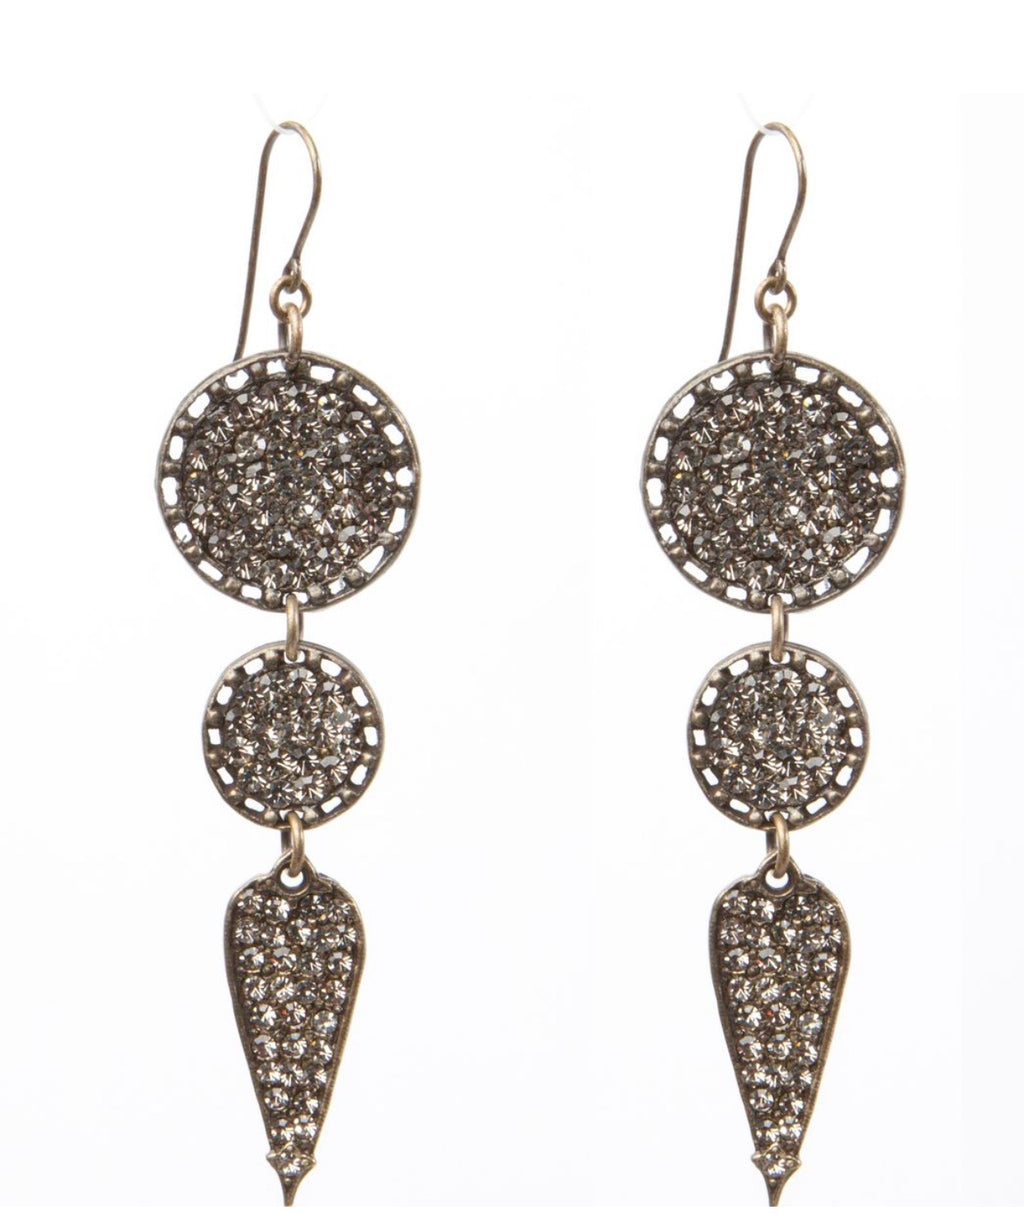 Rebel Triple Drop Earrings/Blk Diamond Crystals